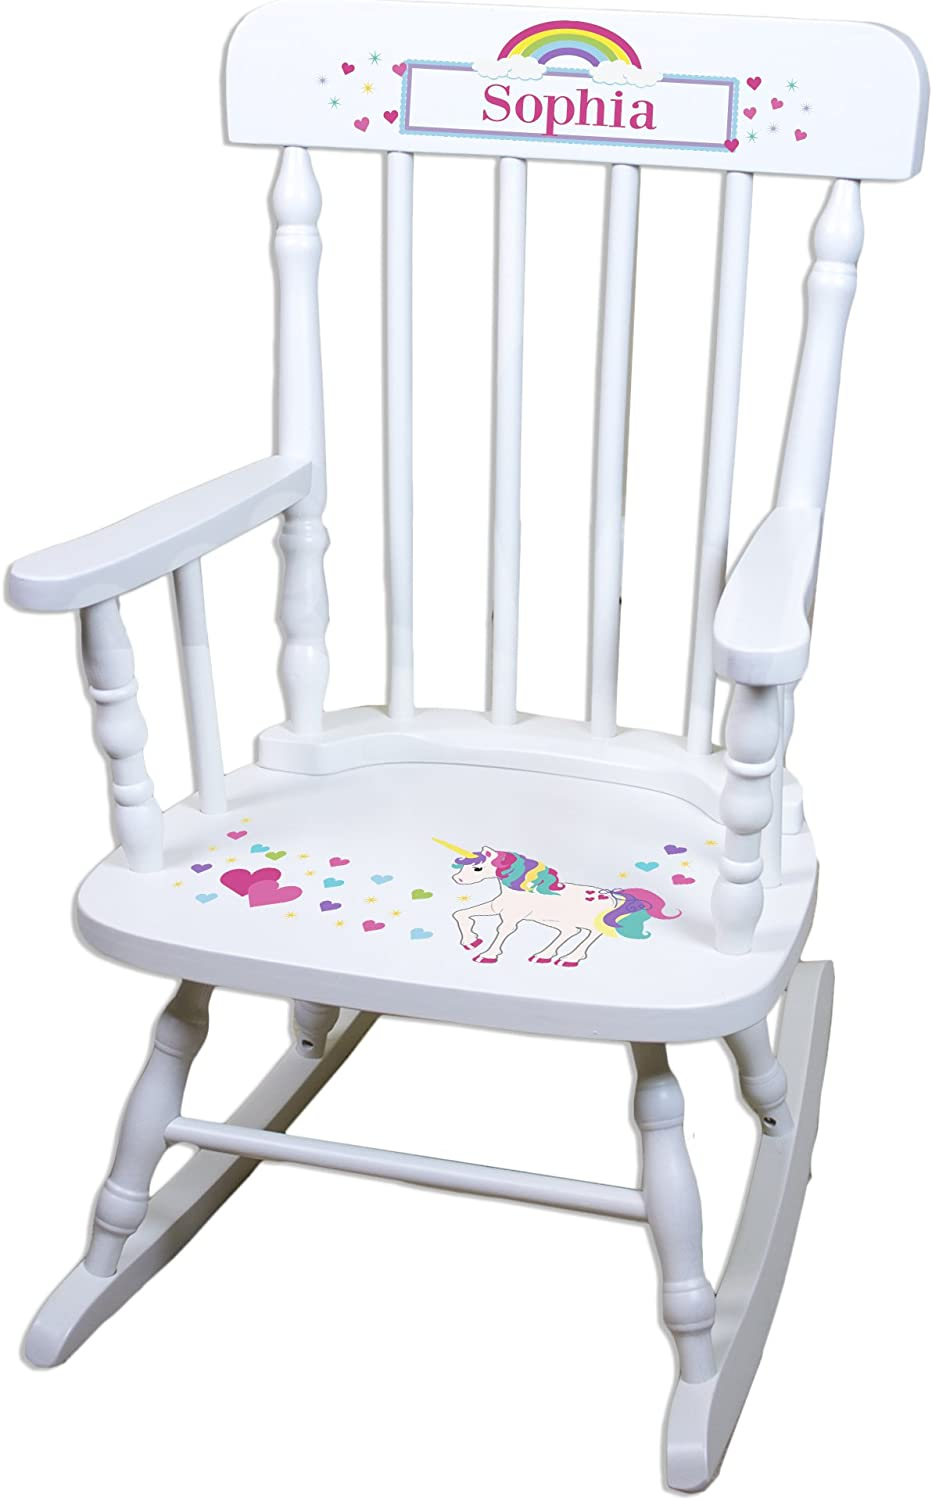 Super beauty product restock quality top Children's Personalized White Chair Rocking Unicorn Mail order